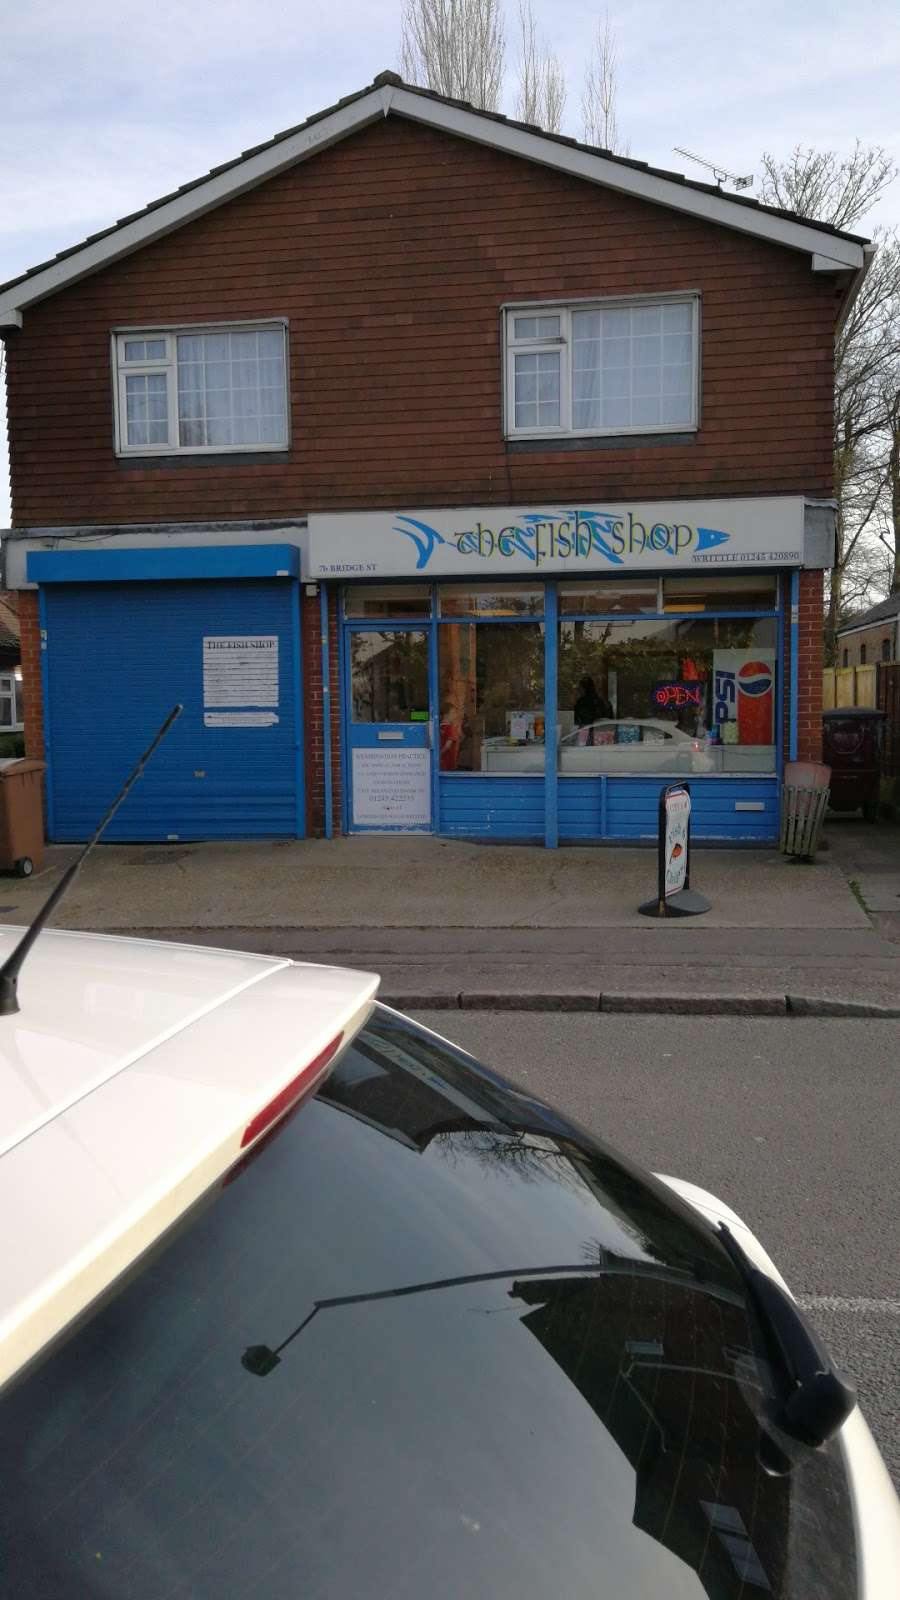 The Fish Shop - meal takeaway  | Photo 7 of 7 | Address: 7B Bridge St, Writtle, Chelmsford CM1 3EY, UK | Phone: 01245 420890